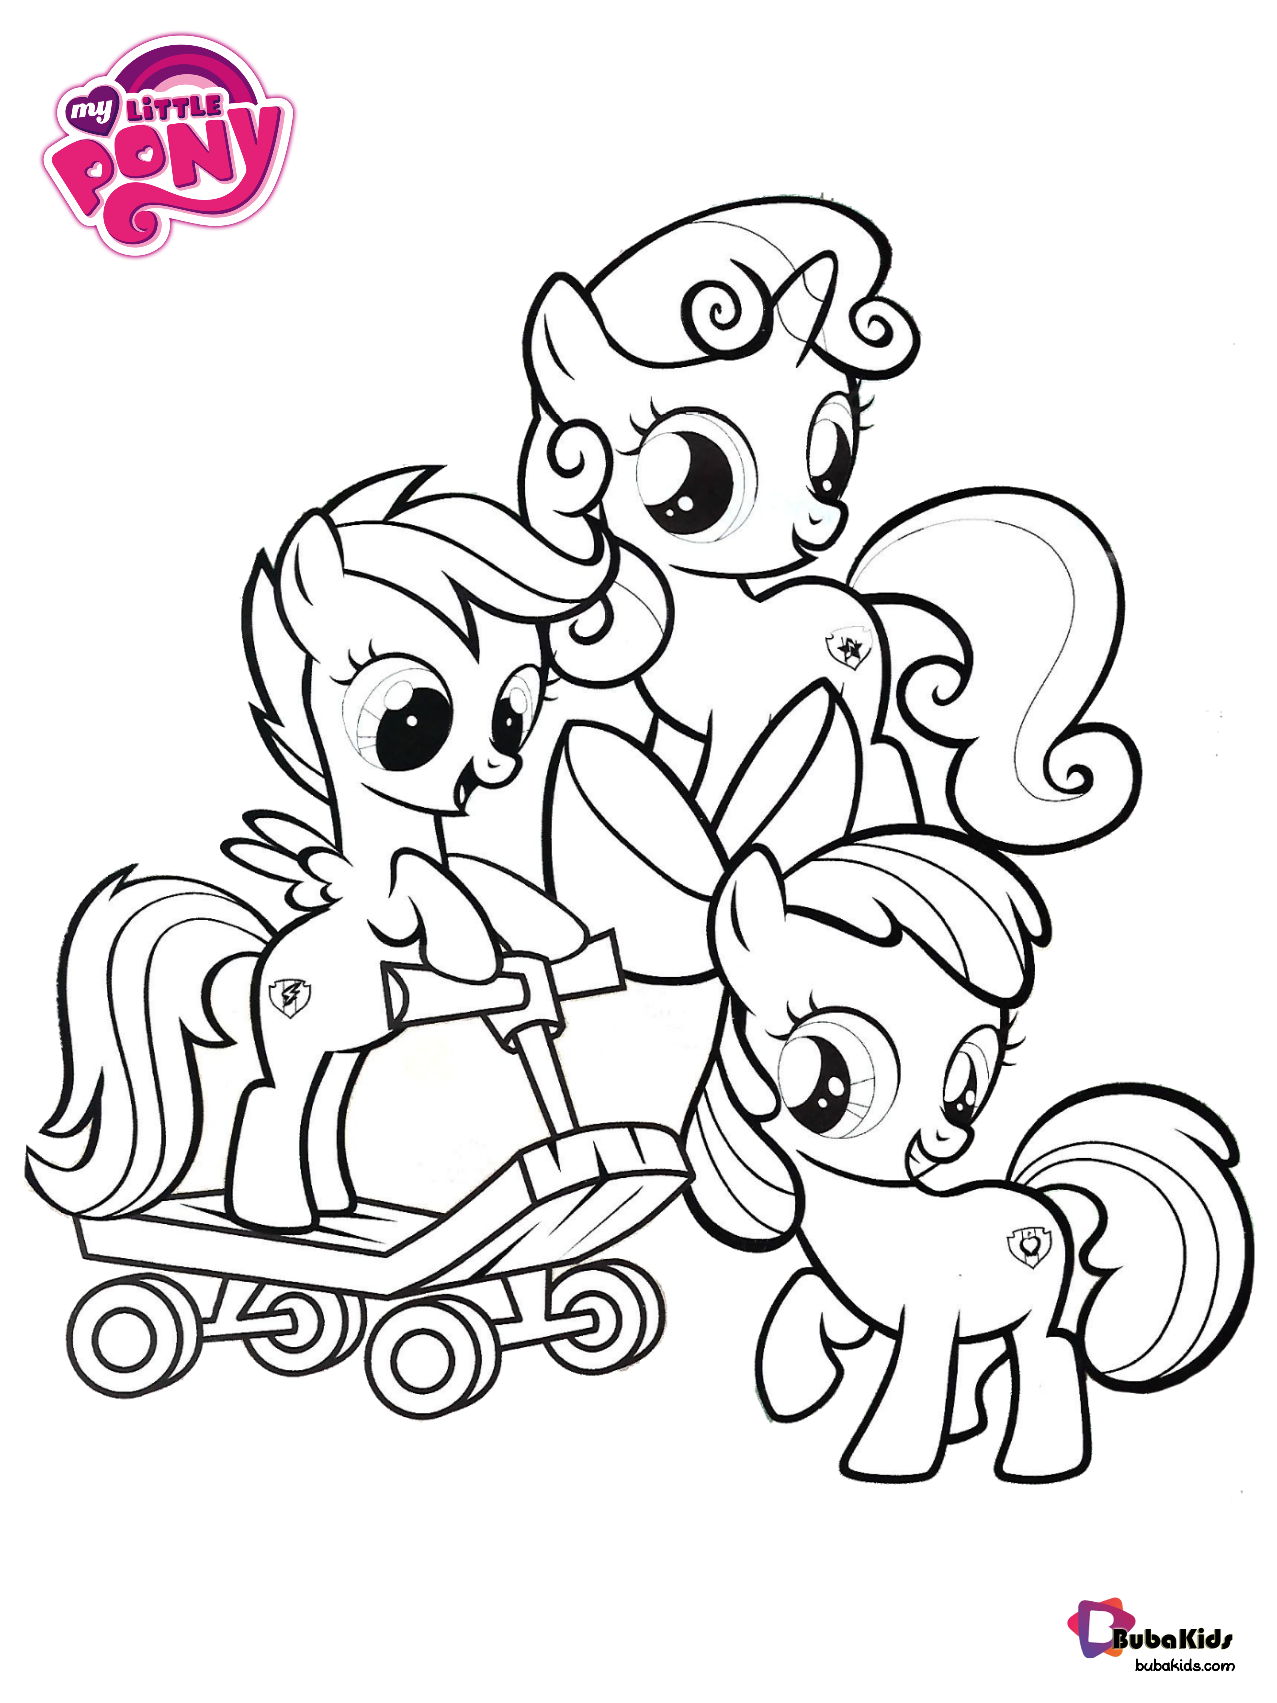 Free Download My Little Pony Best Of Cutie Mark Crusaders Printable Coloring Pages Coll In 2020 My Little Pony Coloring My Little Pony Printable Horse Coloring Pages